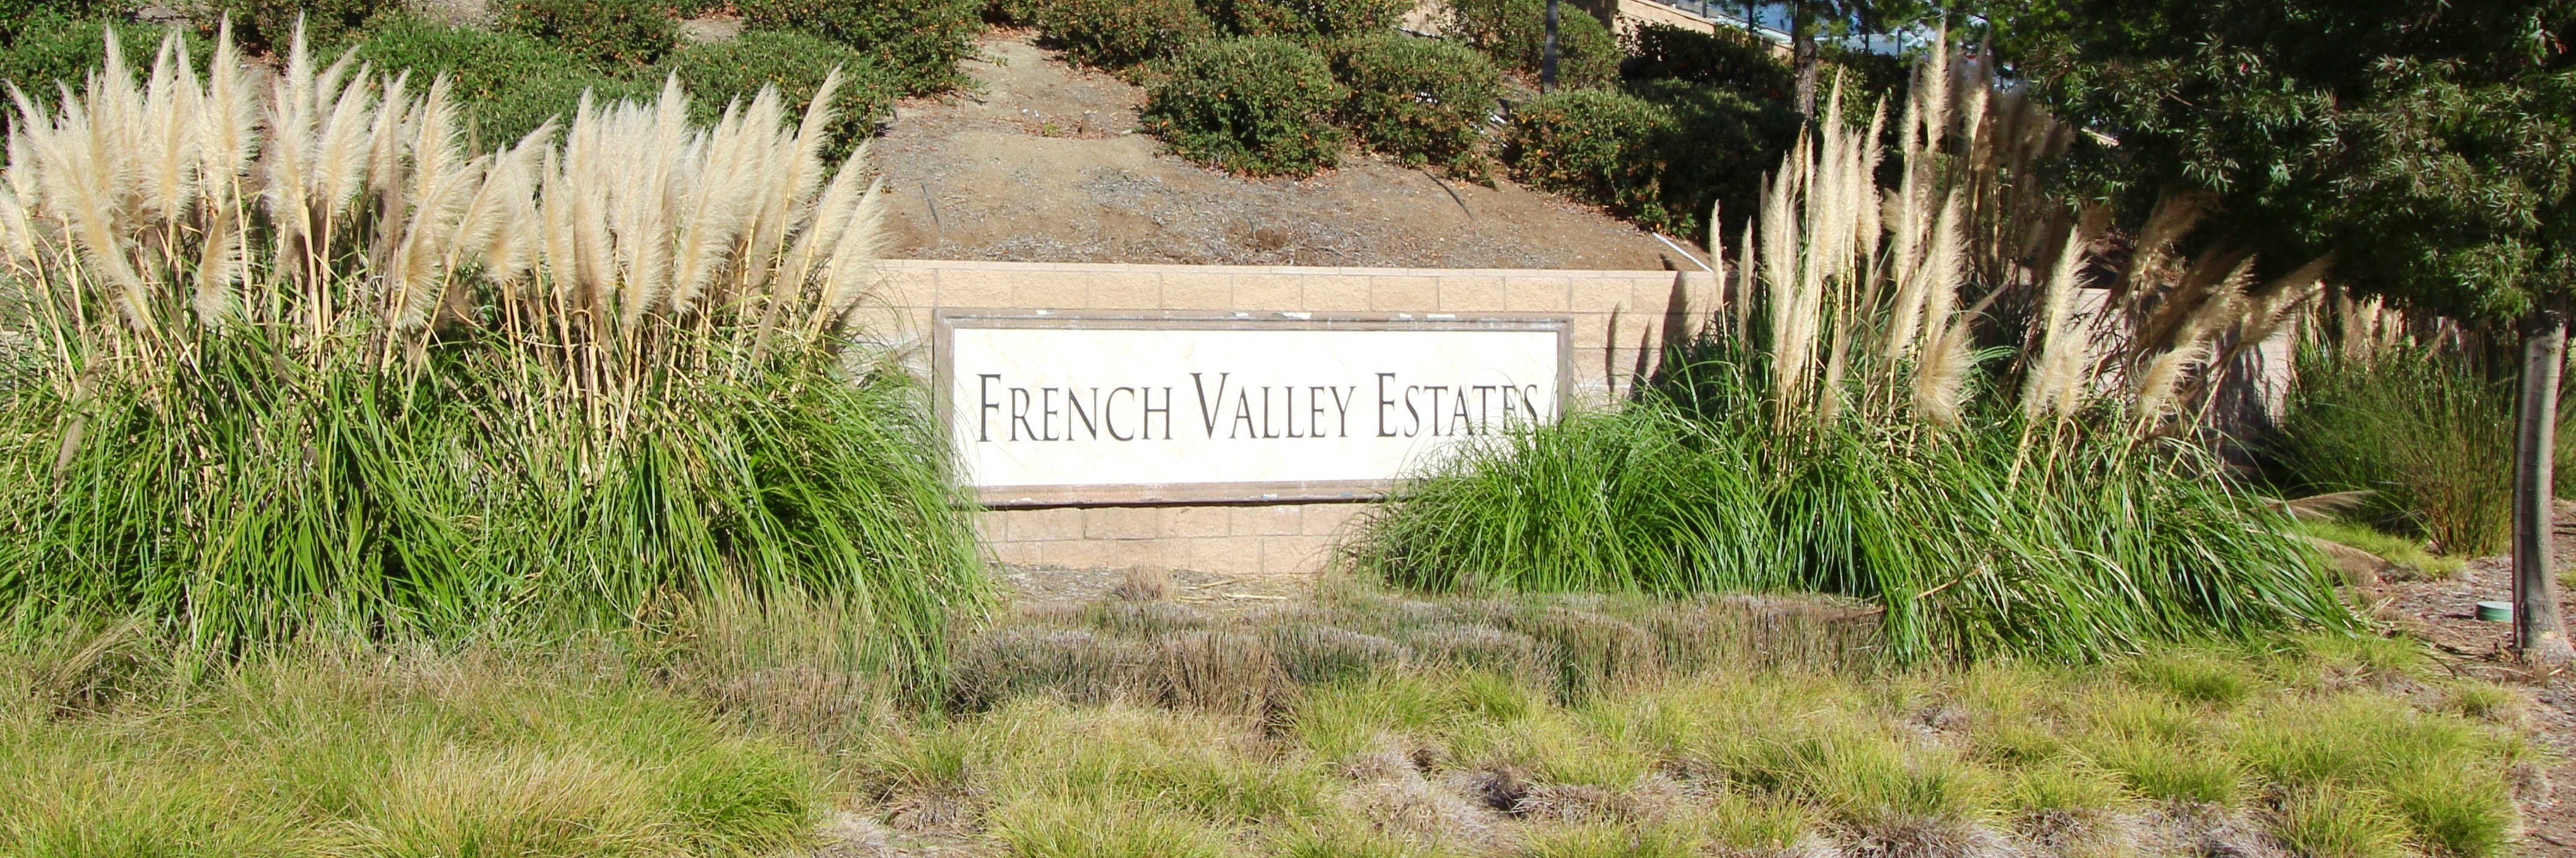 French Valley Estates is a community located in Winchester Ca